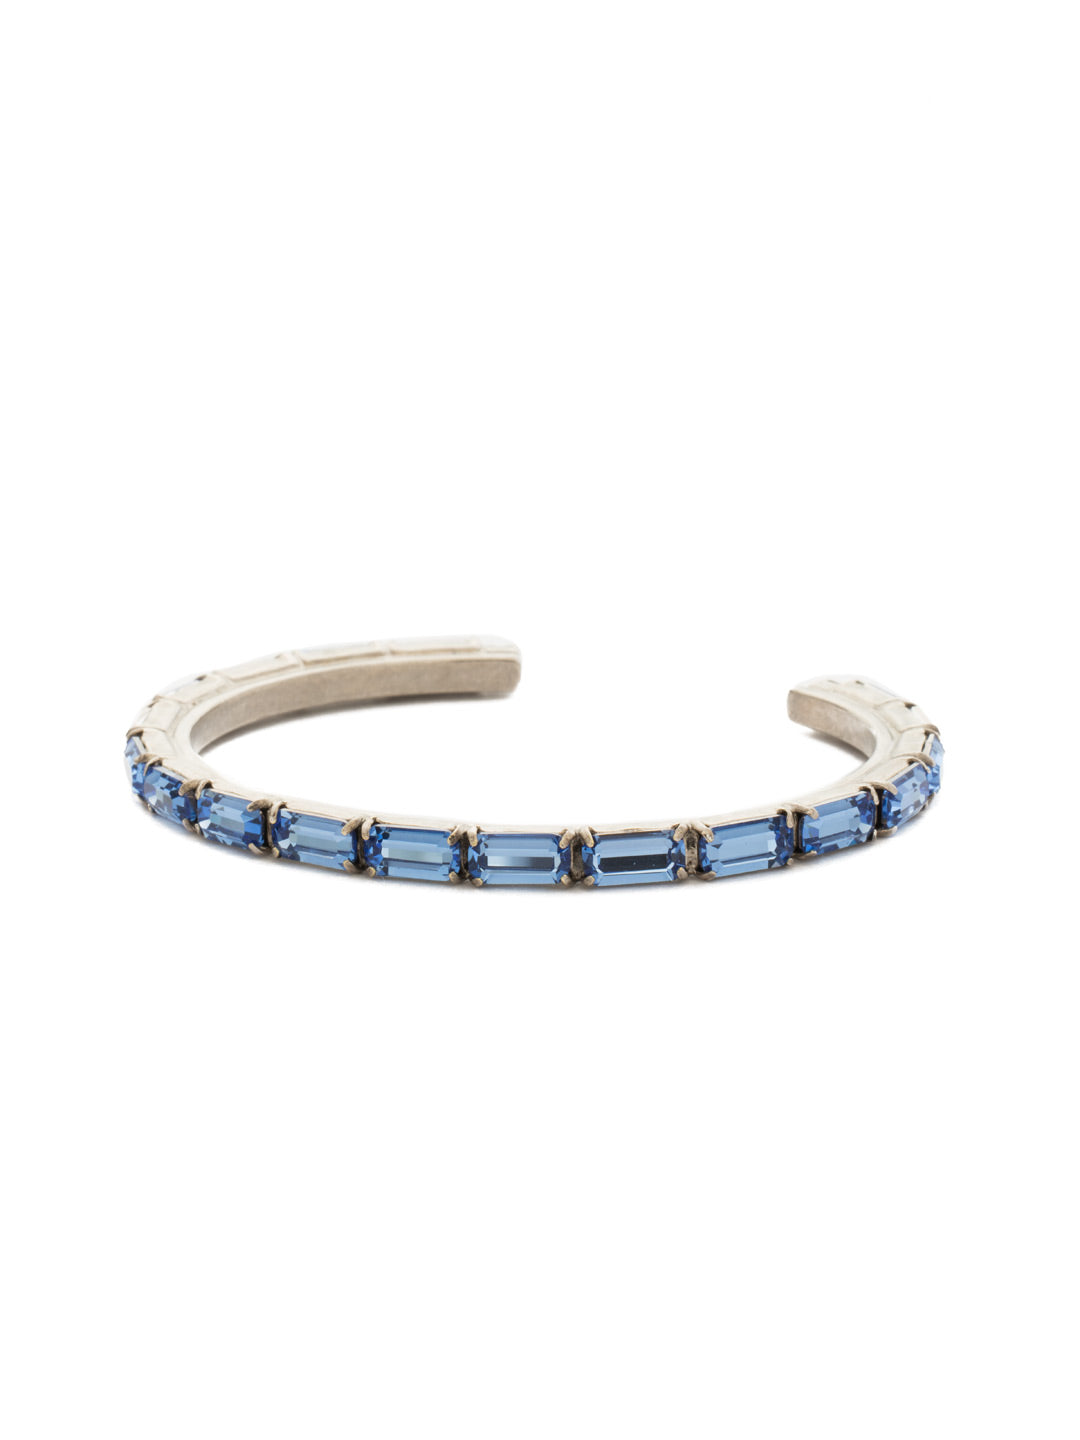 Brilliant Baguette Cuff - BDK49ASSAP